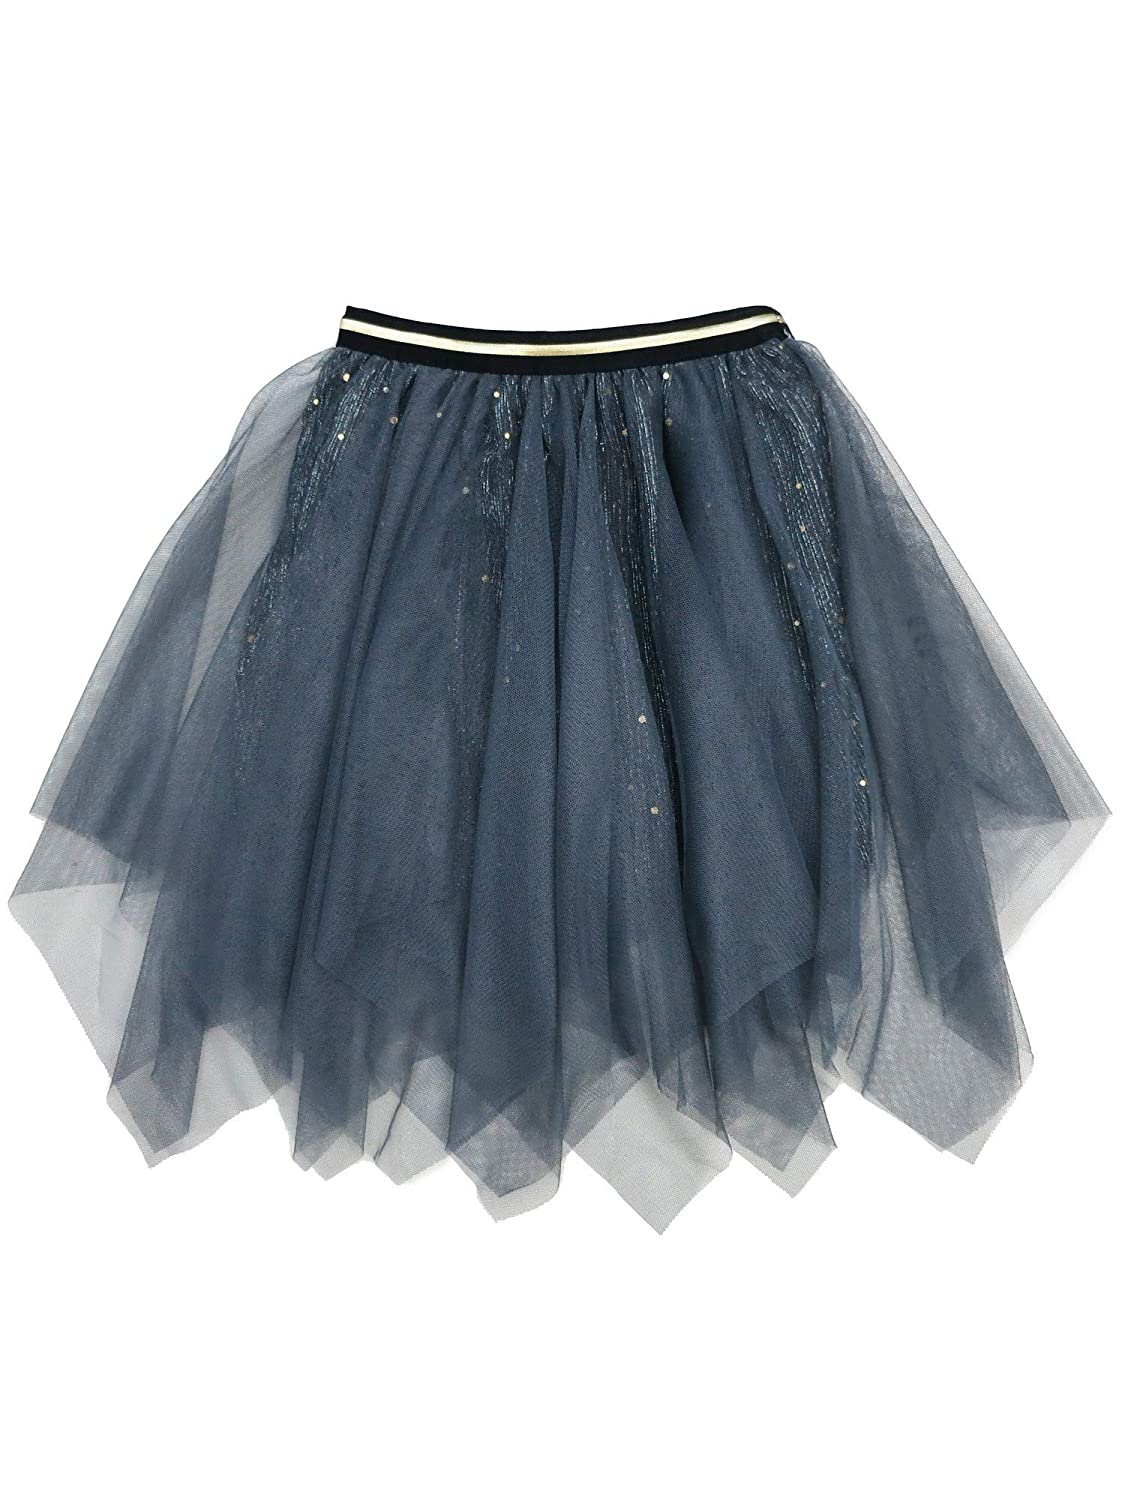 Wenchoice Girls Gray Glitter Uneven Cut Overlaid Mesh Tutu Skirt 9M-8